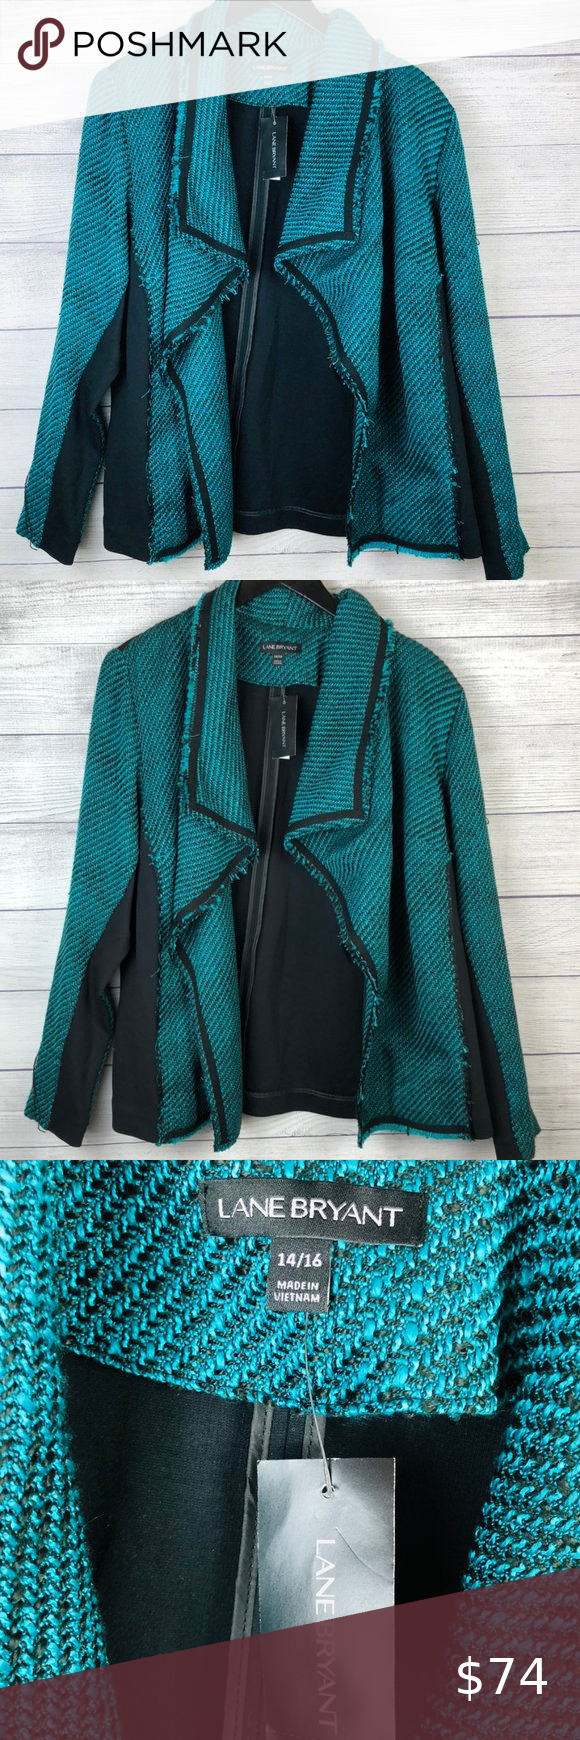 Lane Bryant Jacket Blazer Tweed Teal Black 14